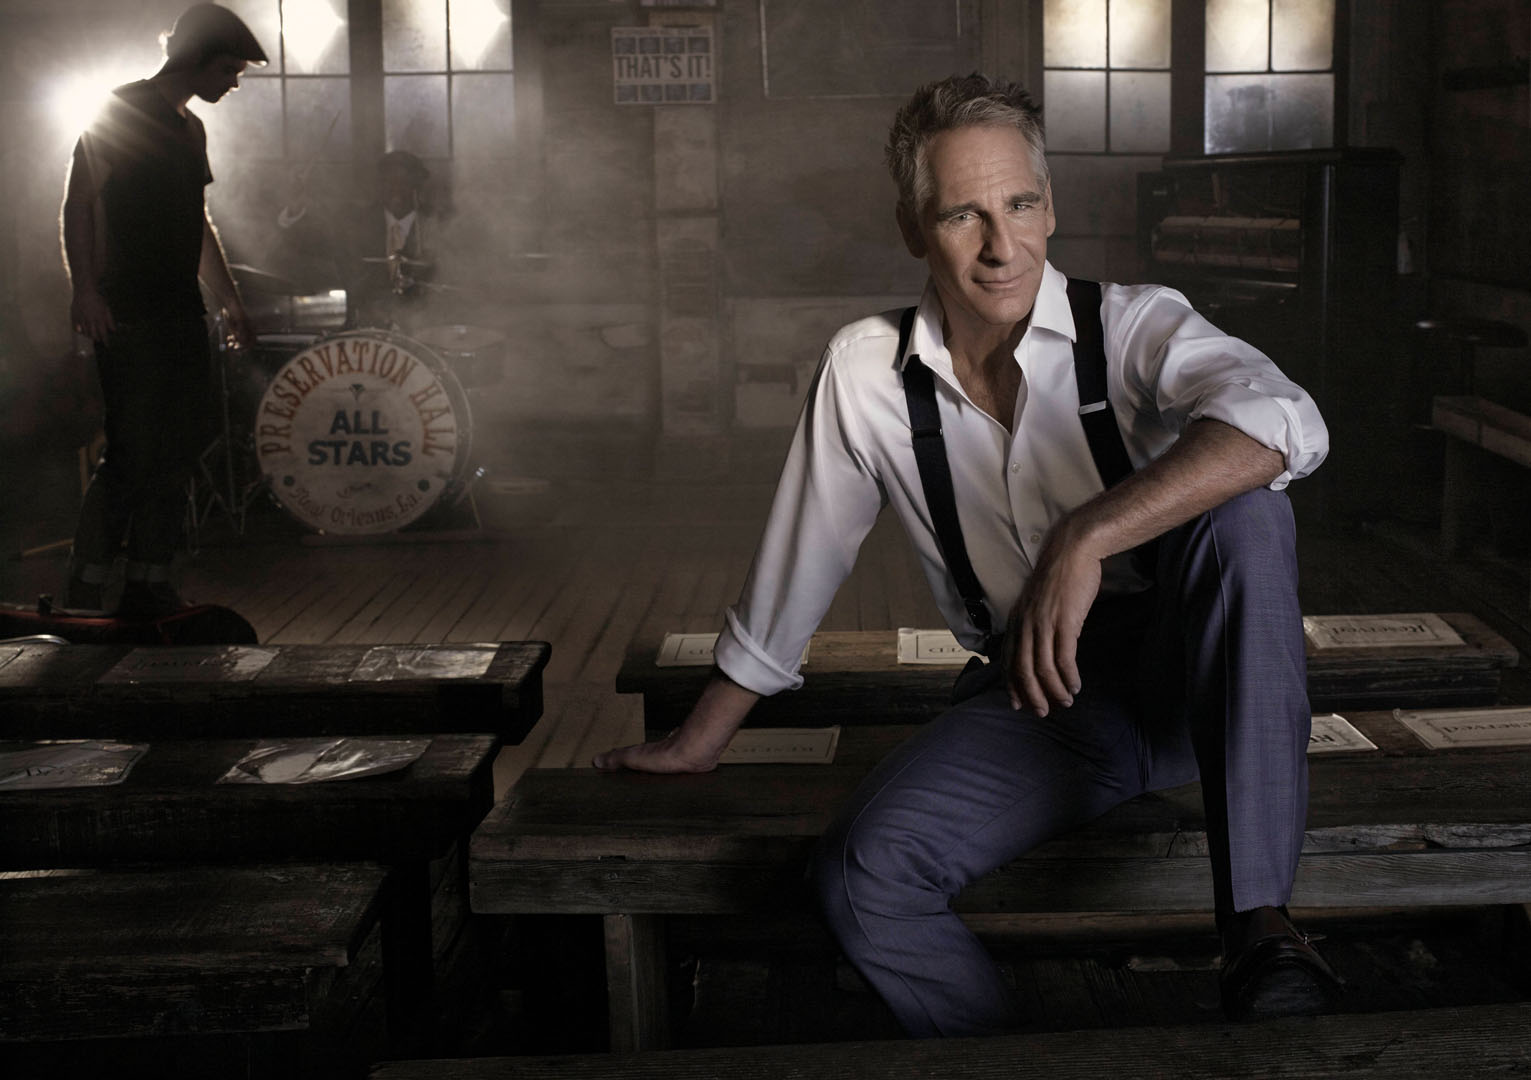 Scott Bakula shows off his sophisticated side in these fashion photos